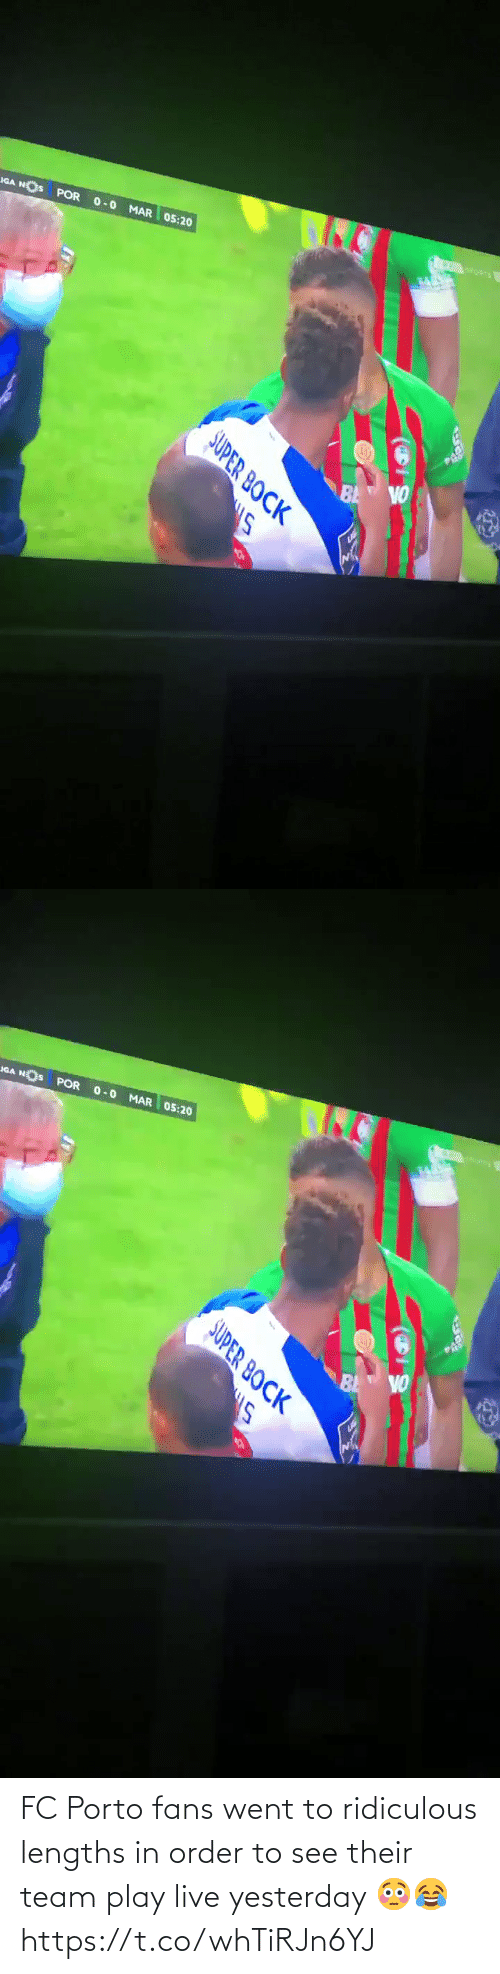 soccer: FC Porto fans went to ridiculous lengths in order to see their team play live yesterday 😳😂 https://t.co/whTiRJn6YJ